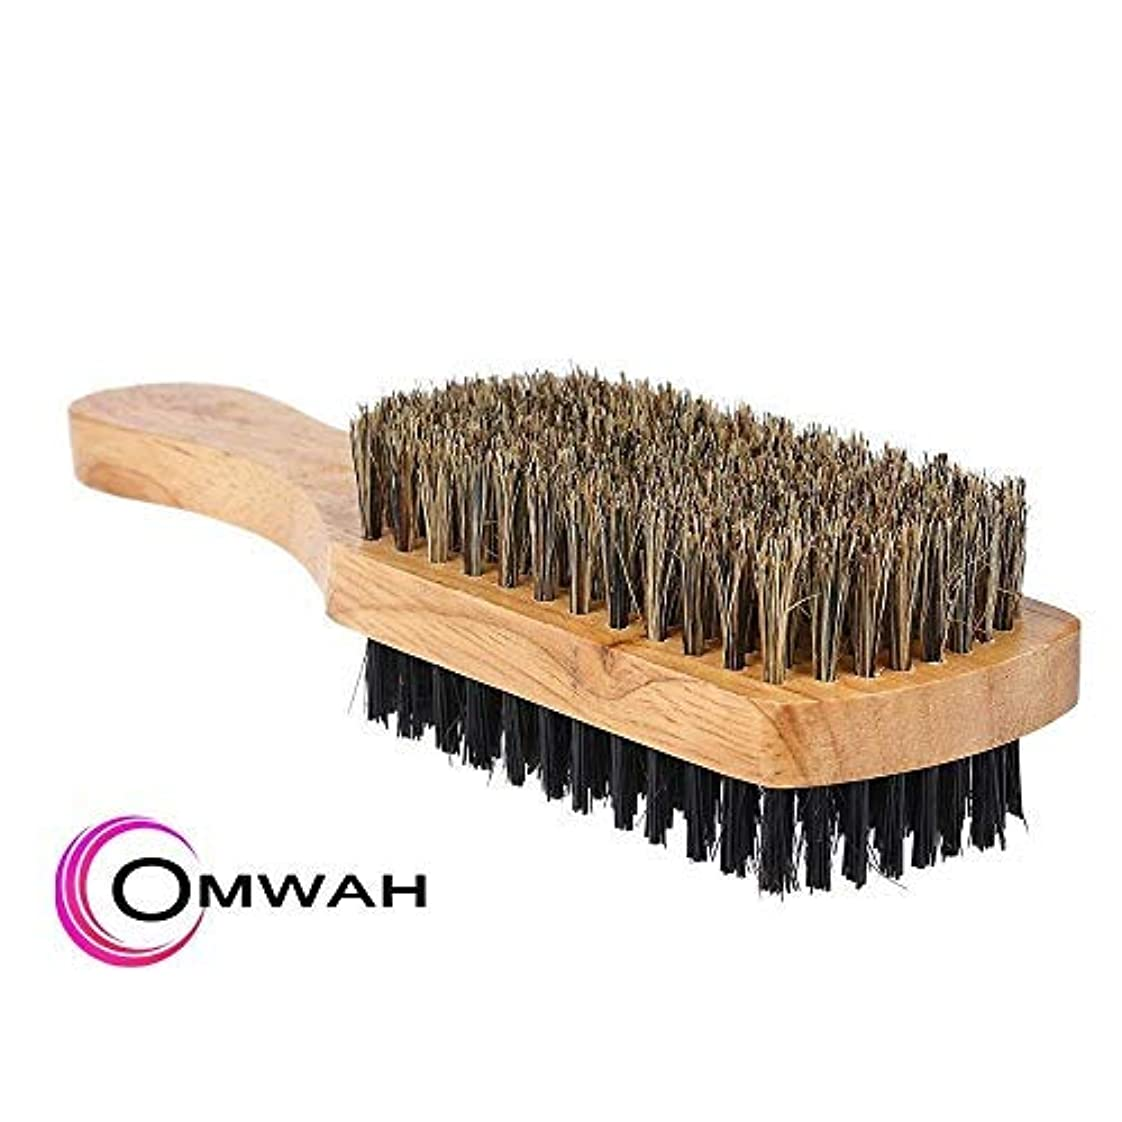 デッドロック土砂降りあえてOmwah Double Sided 2 Sided Facial Hairbrush Styling Beard Brush Mens Boar Bristle [並行輸入品]